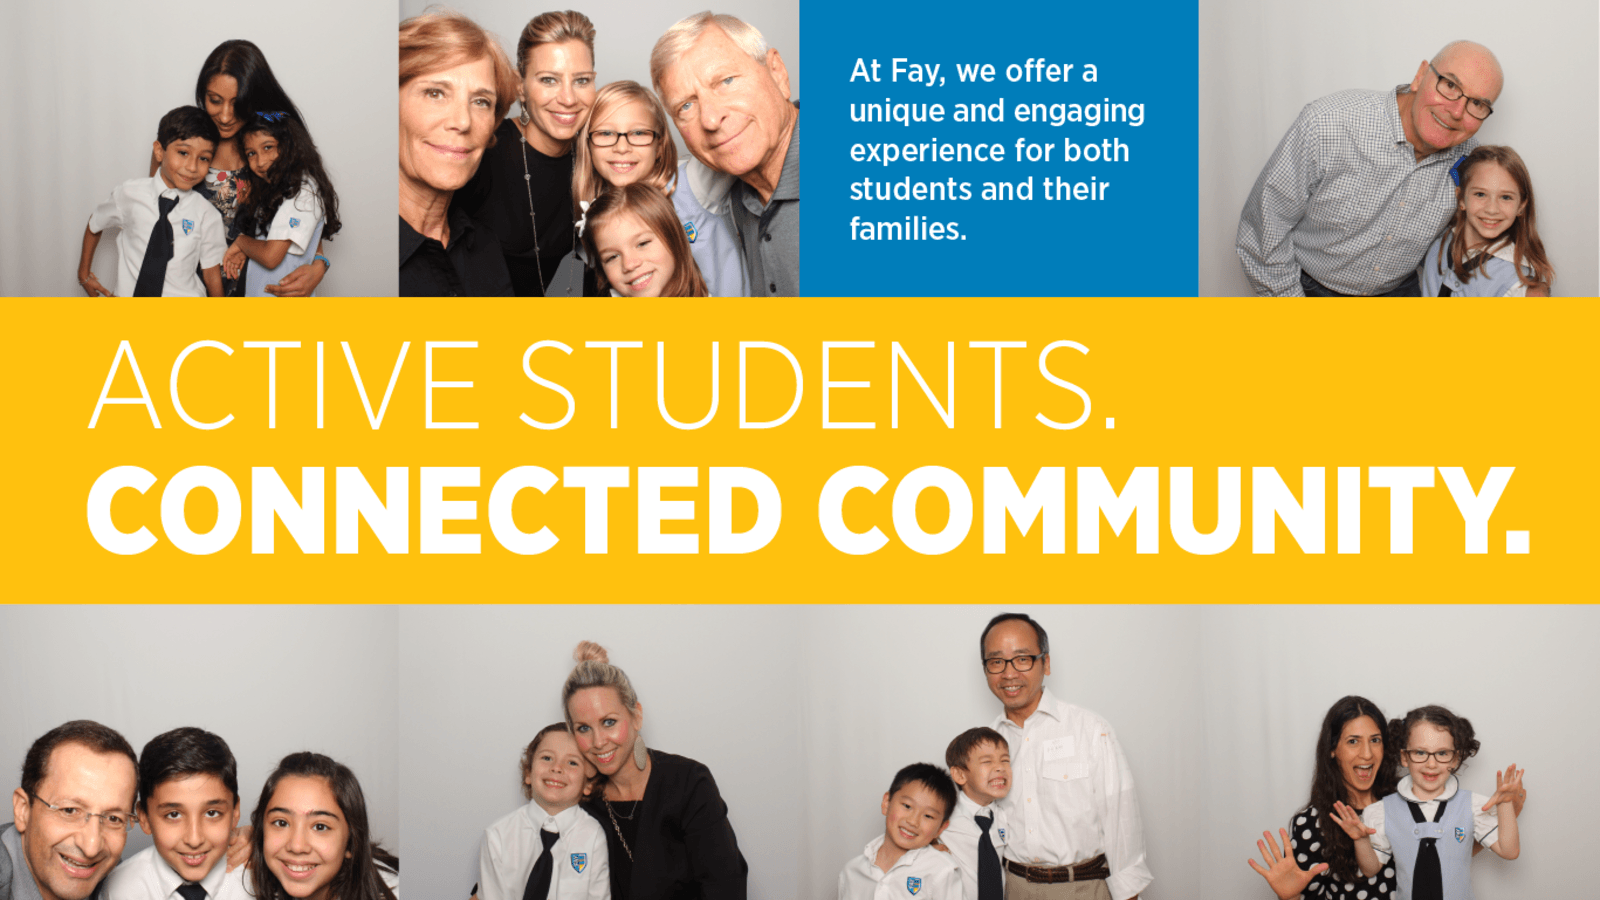 Homepage slider of Fay's active and connected community beyond just students and teachers.